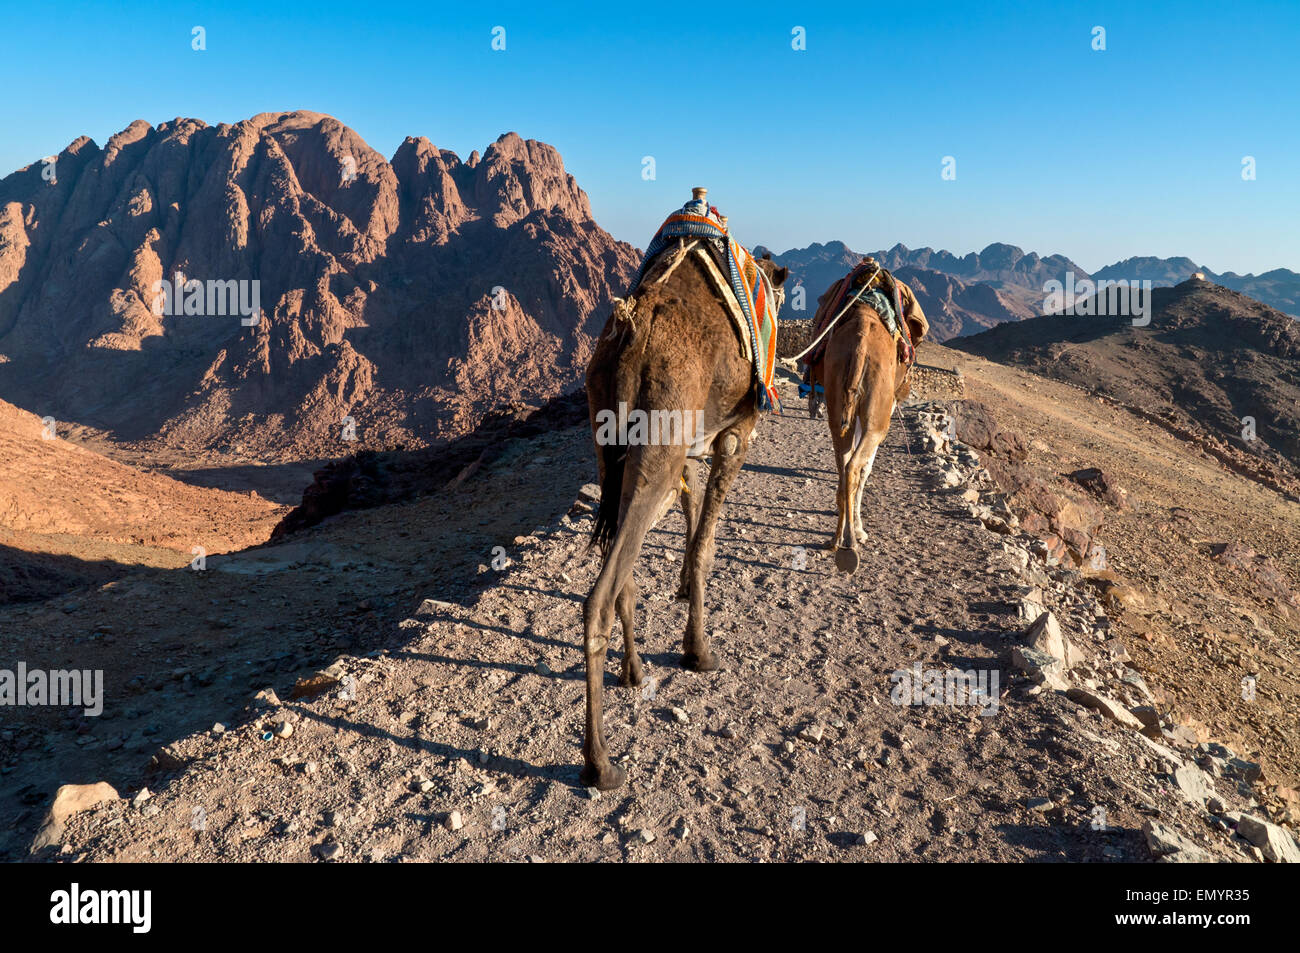 Bedouins and his camels descending from Mount Sinai in Egypt shortly after sunrise - Stock Image